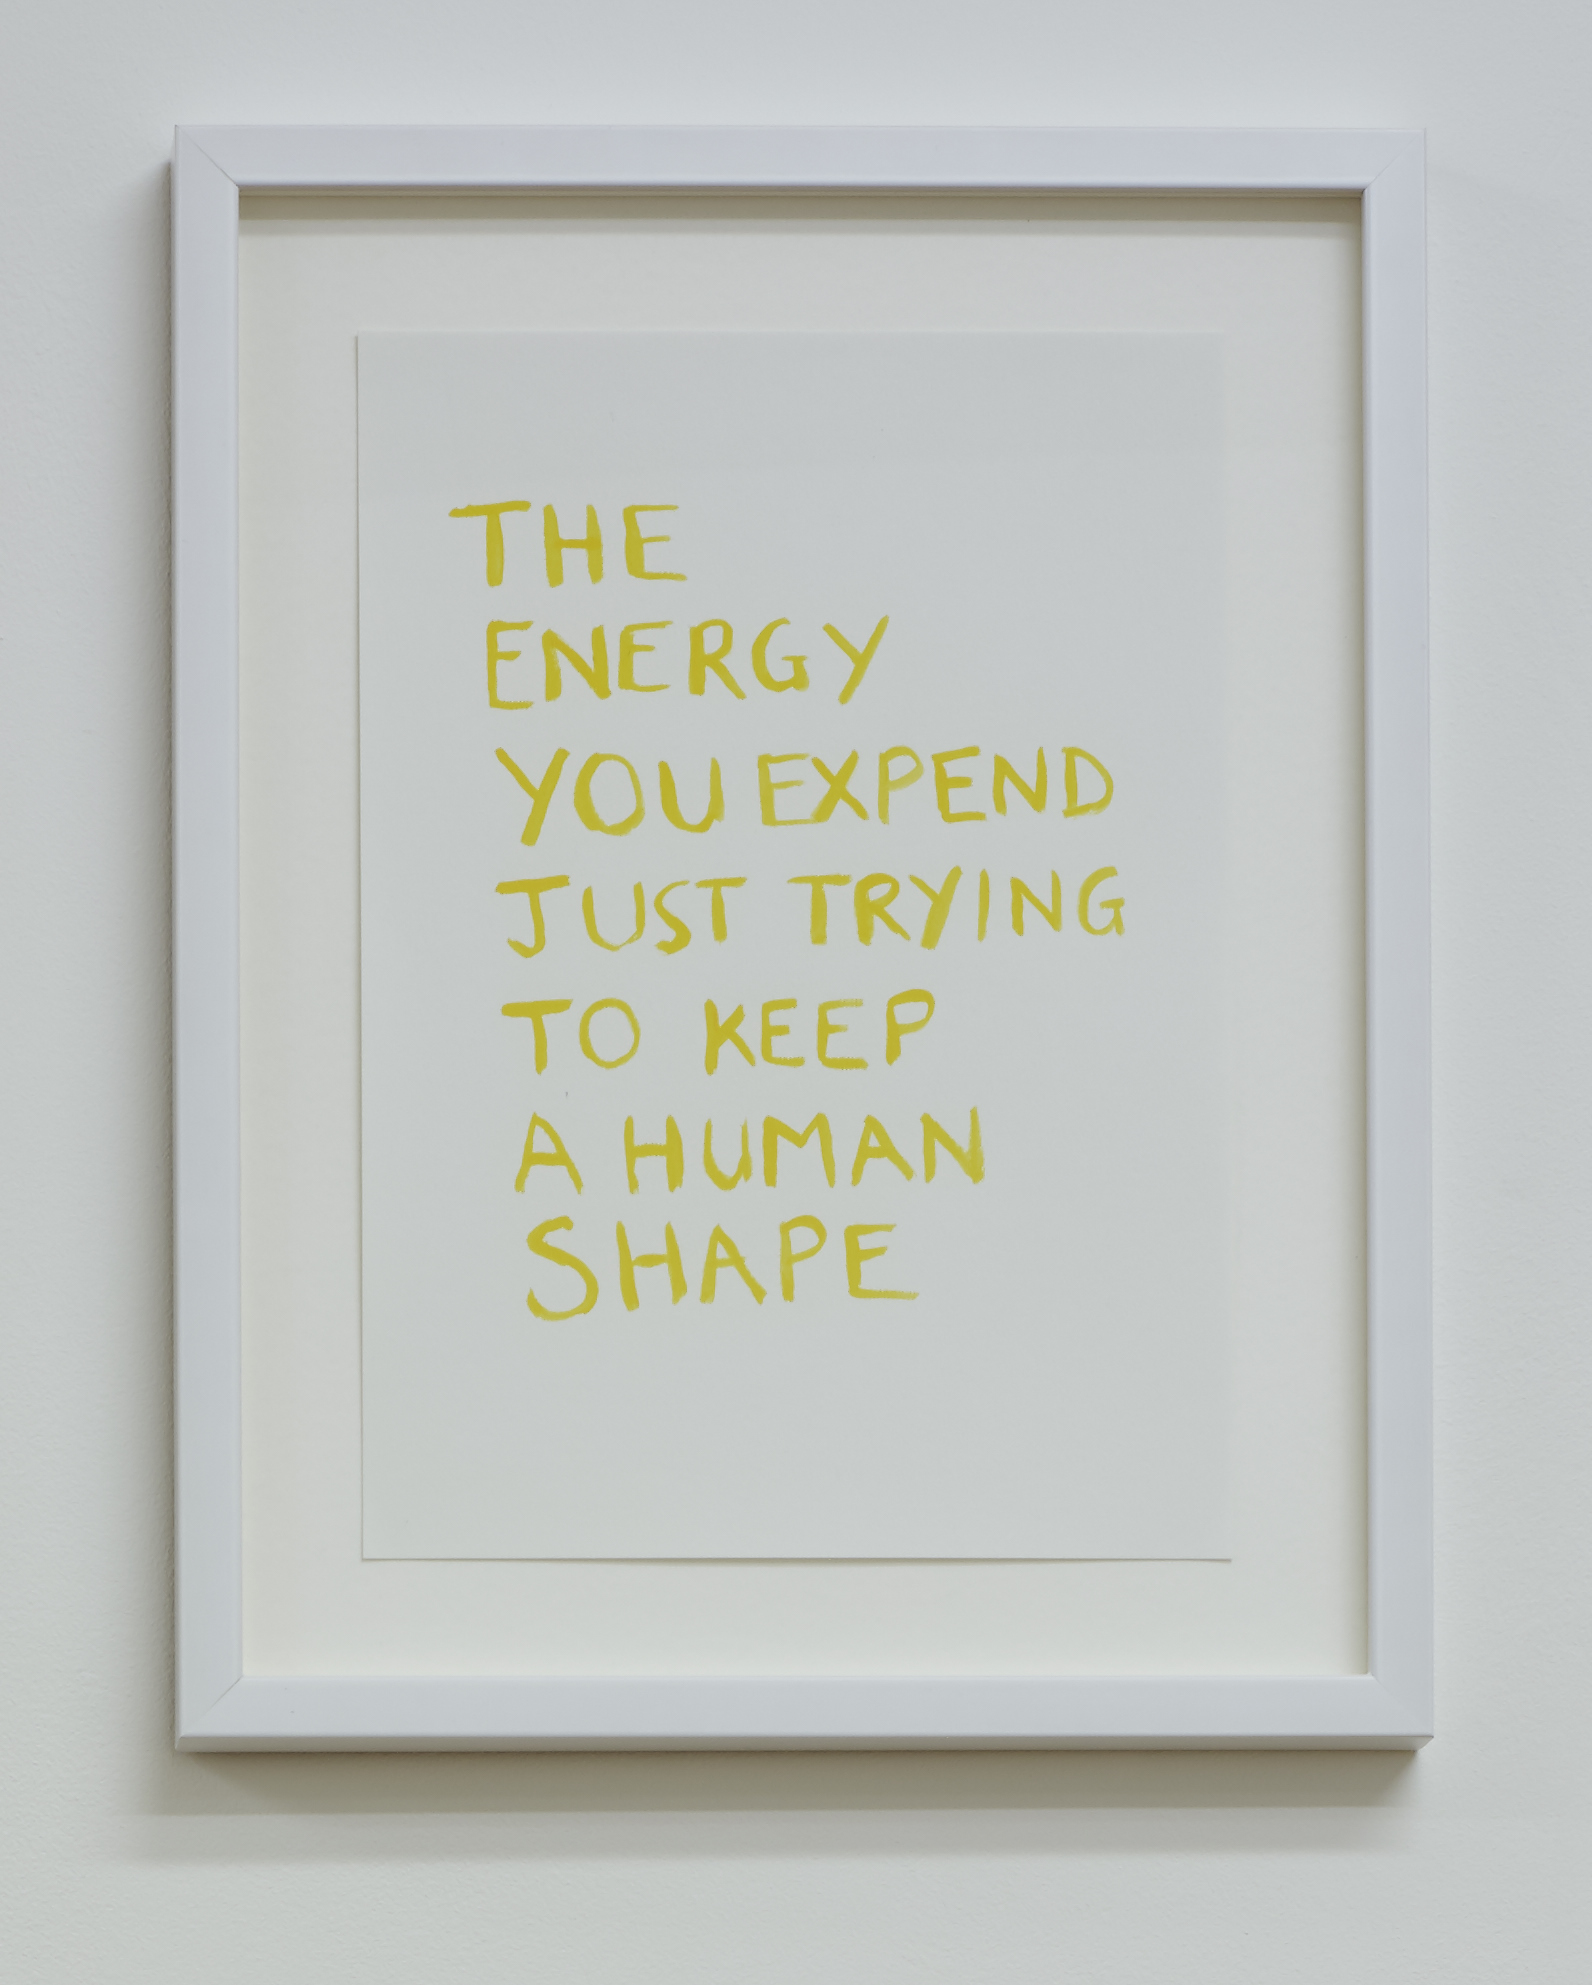 Tim Etchells, Human Shape, 2015. Yellow acrylic on archival paper. Framed. 21 x 29.7 cm.